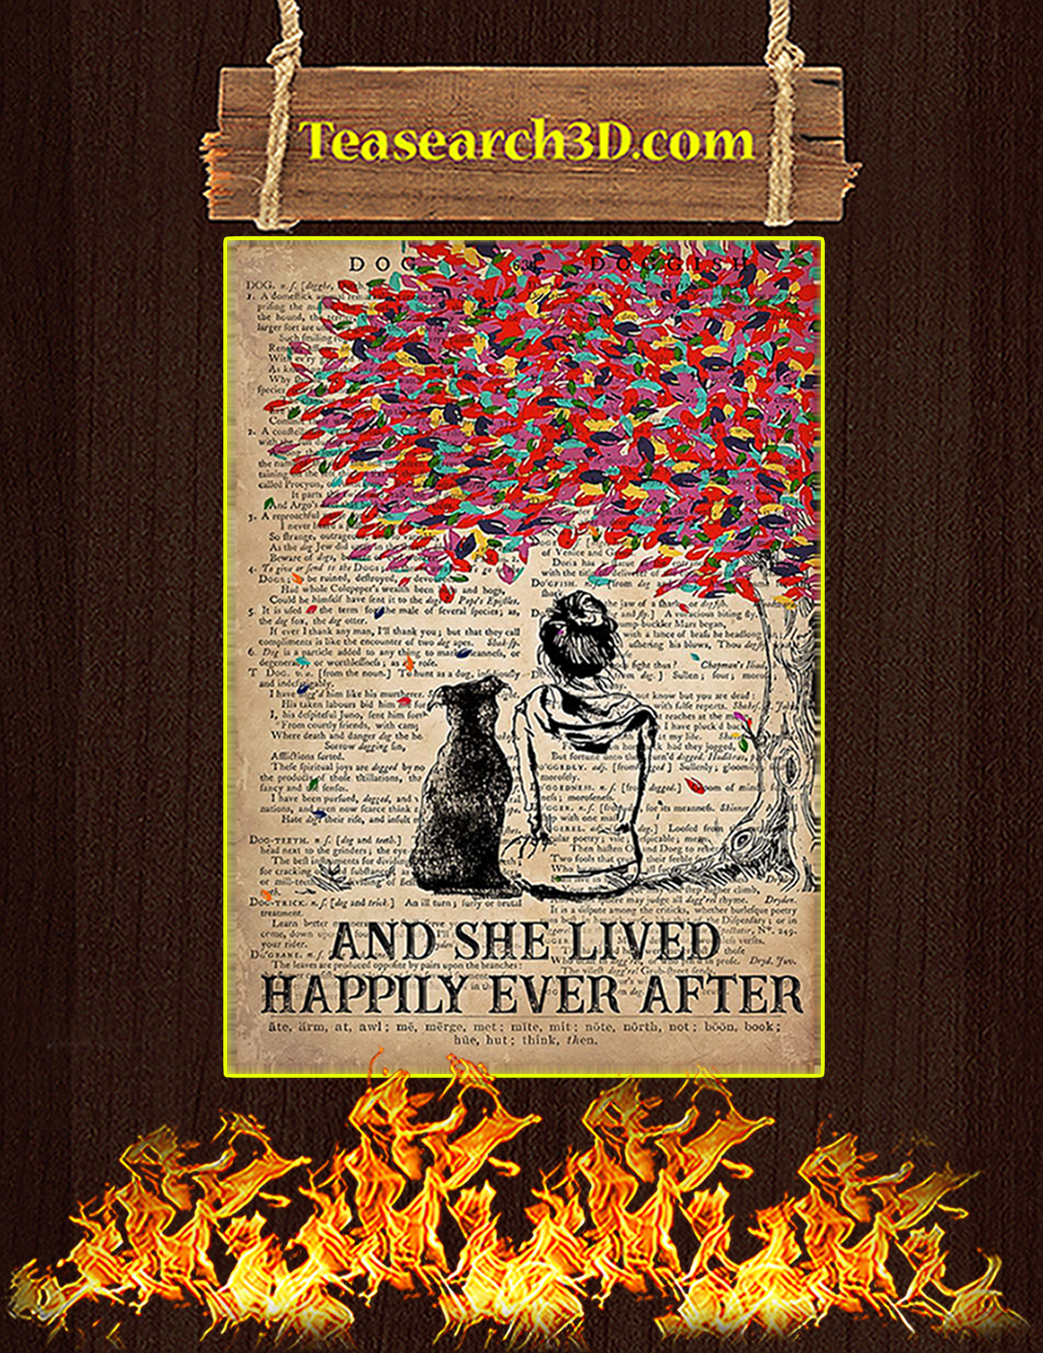 Dog pitbull and she lived happily ever after poster A1